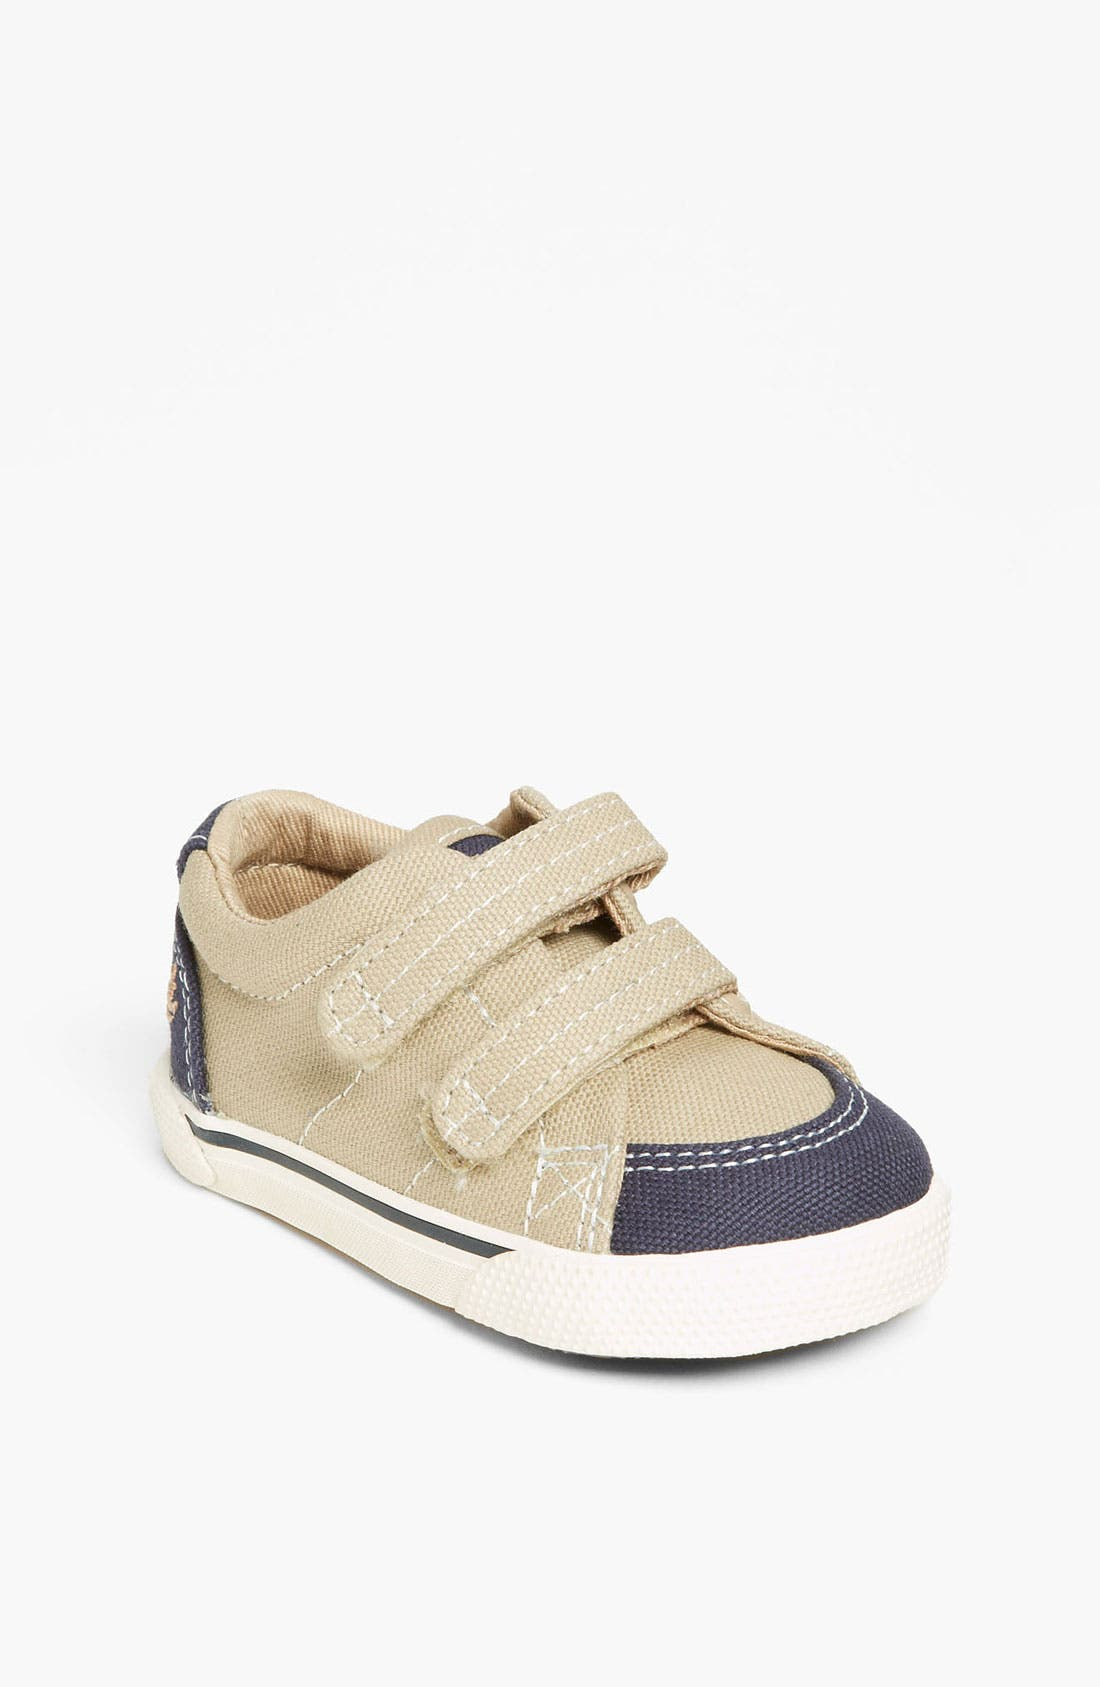 Main Image - Sperry Top-Sider® 'Halyard' Crib Shoe (Baby)